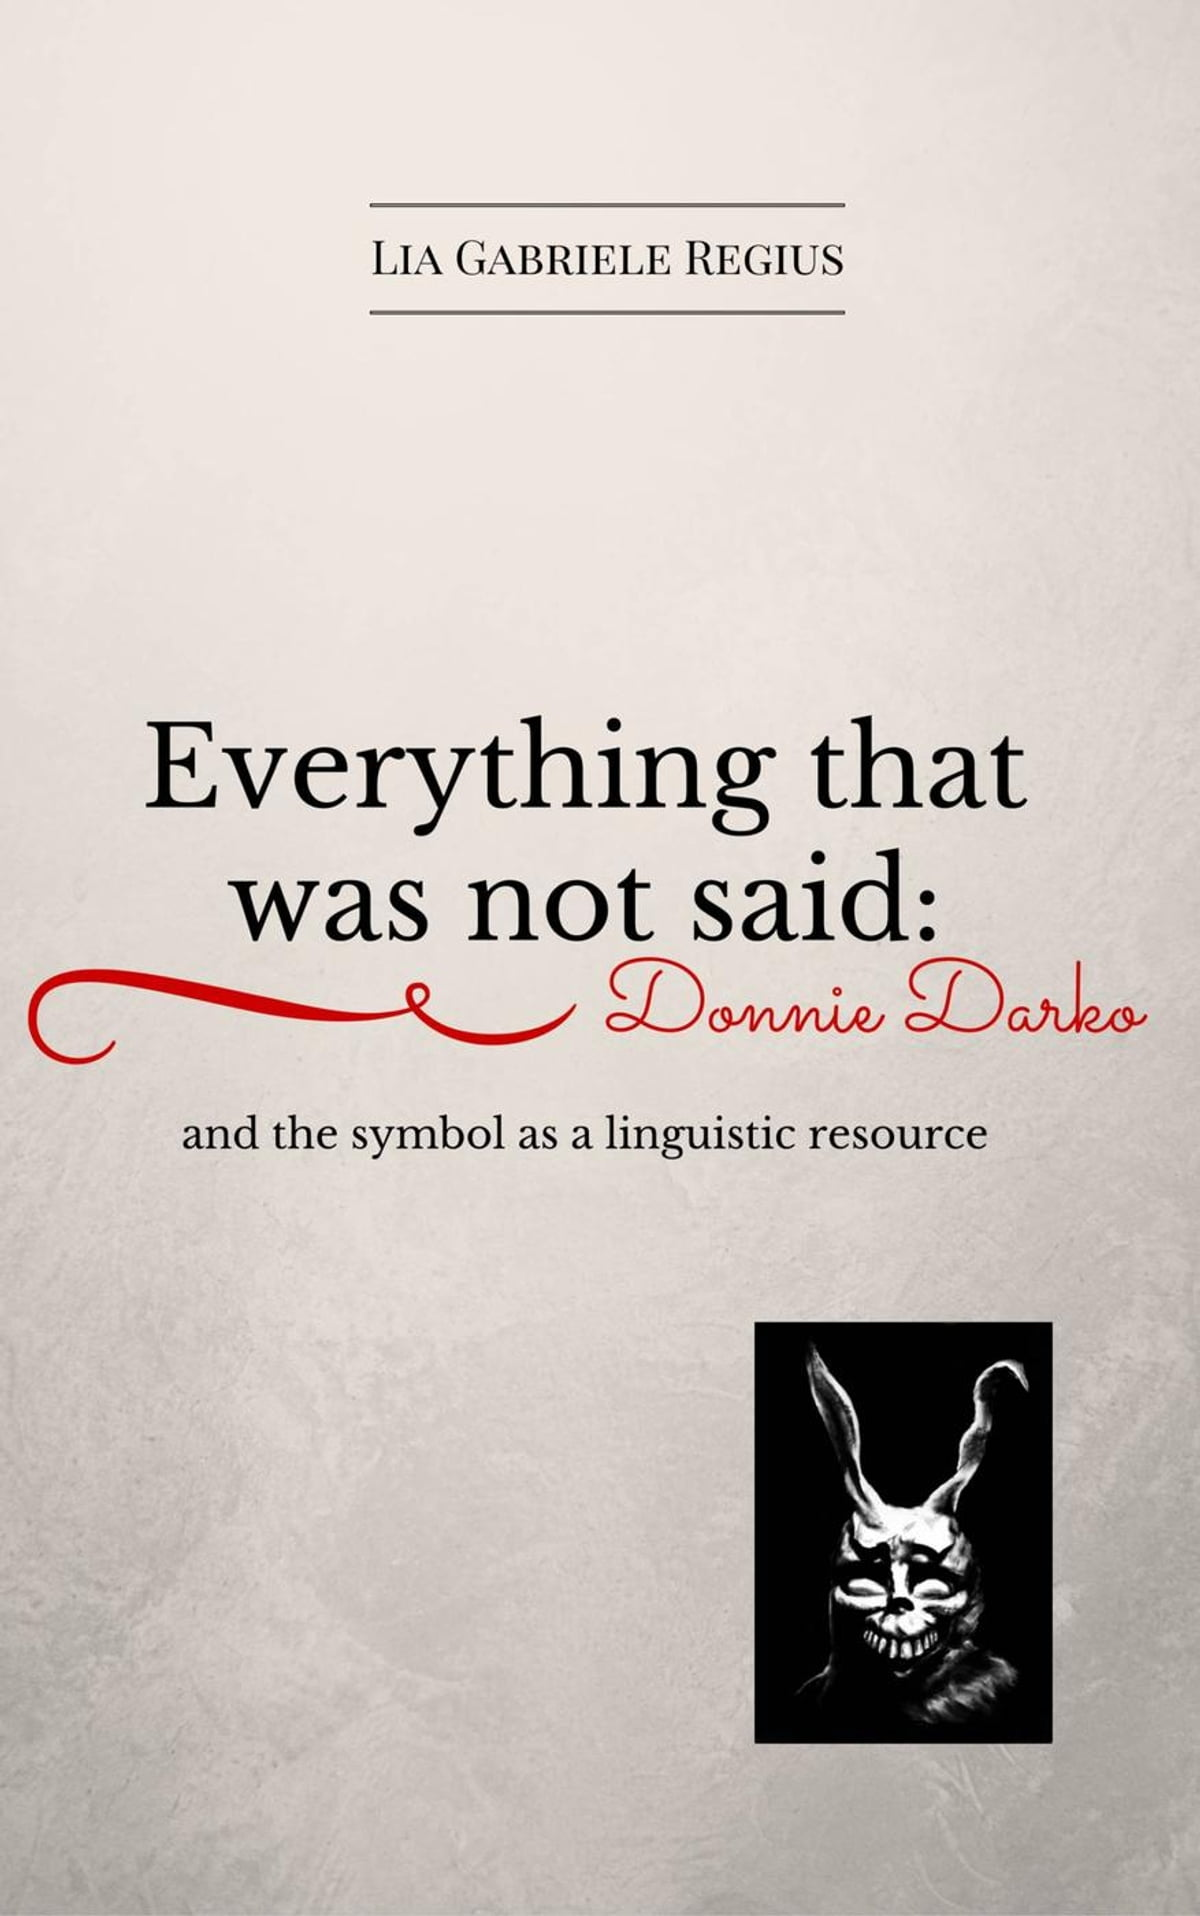 Everything that was not said donnie darko and the symbol as a everything that was not said donnie darko and the symbol as a linguistic recourse ebook by lia gabriele regius 9781507143797 rakuten kobo biocorpaavc Gallery